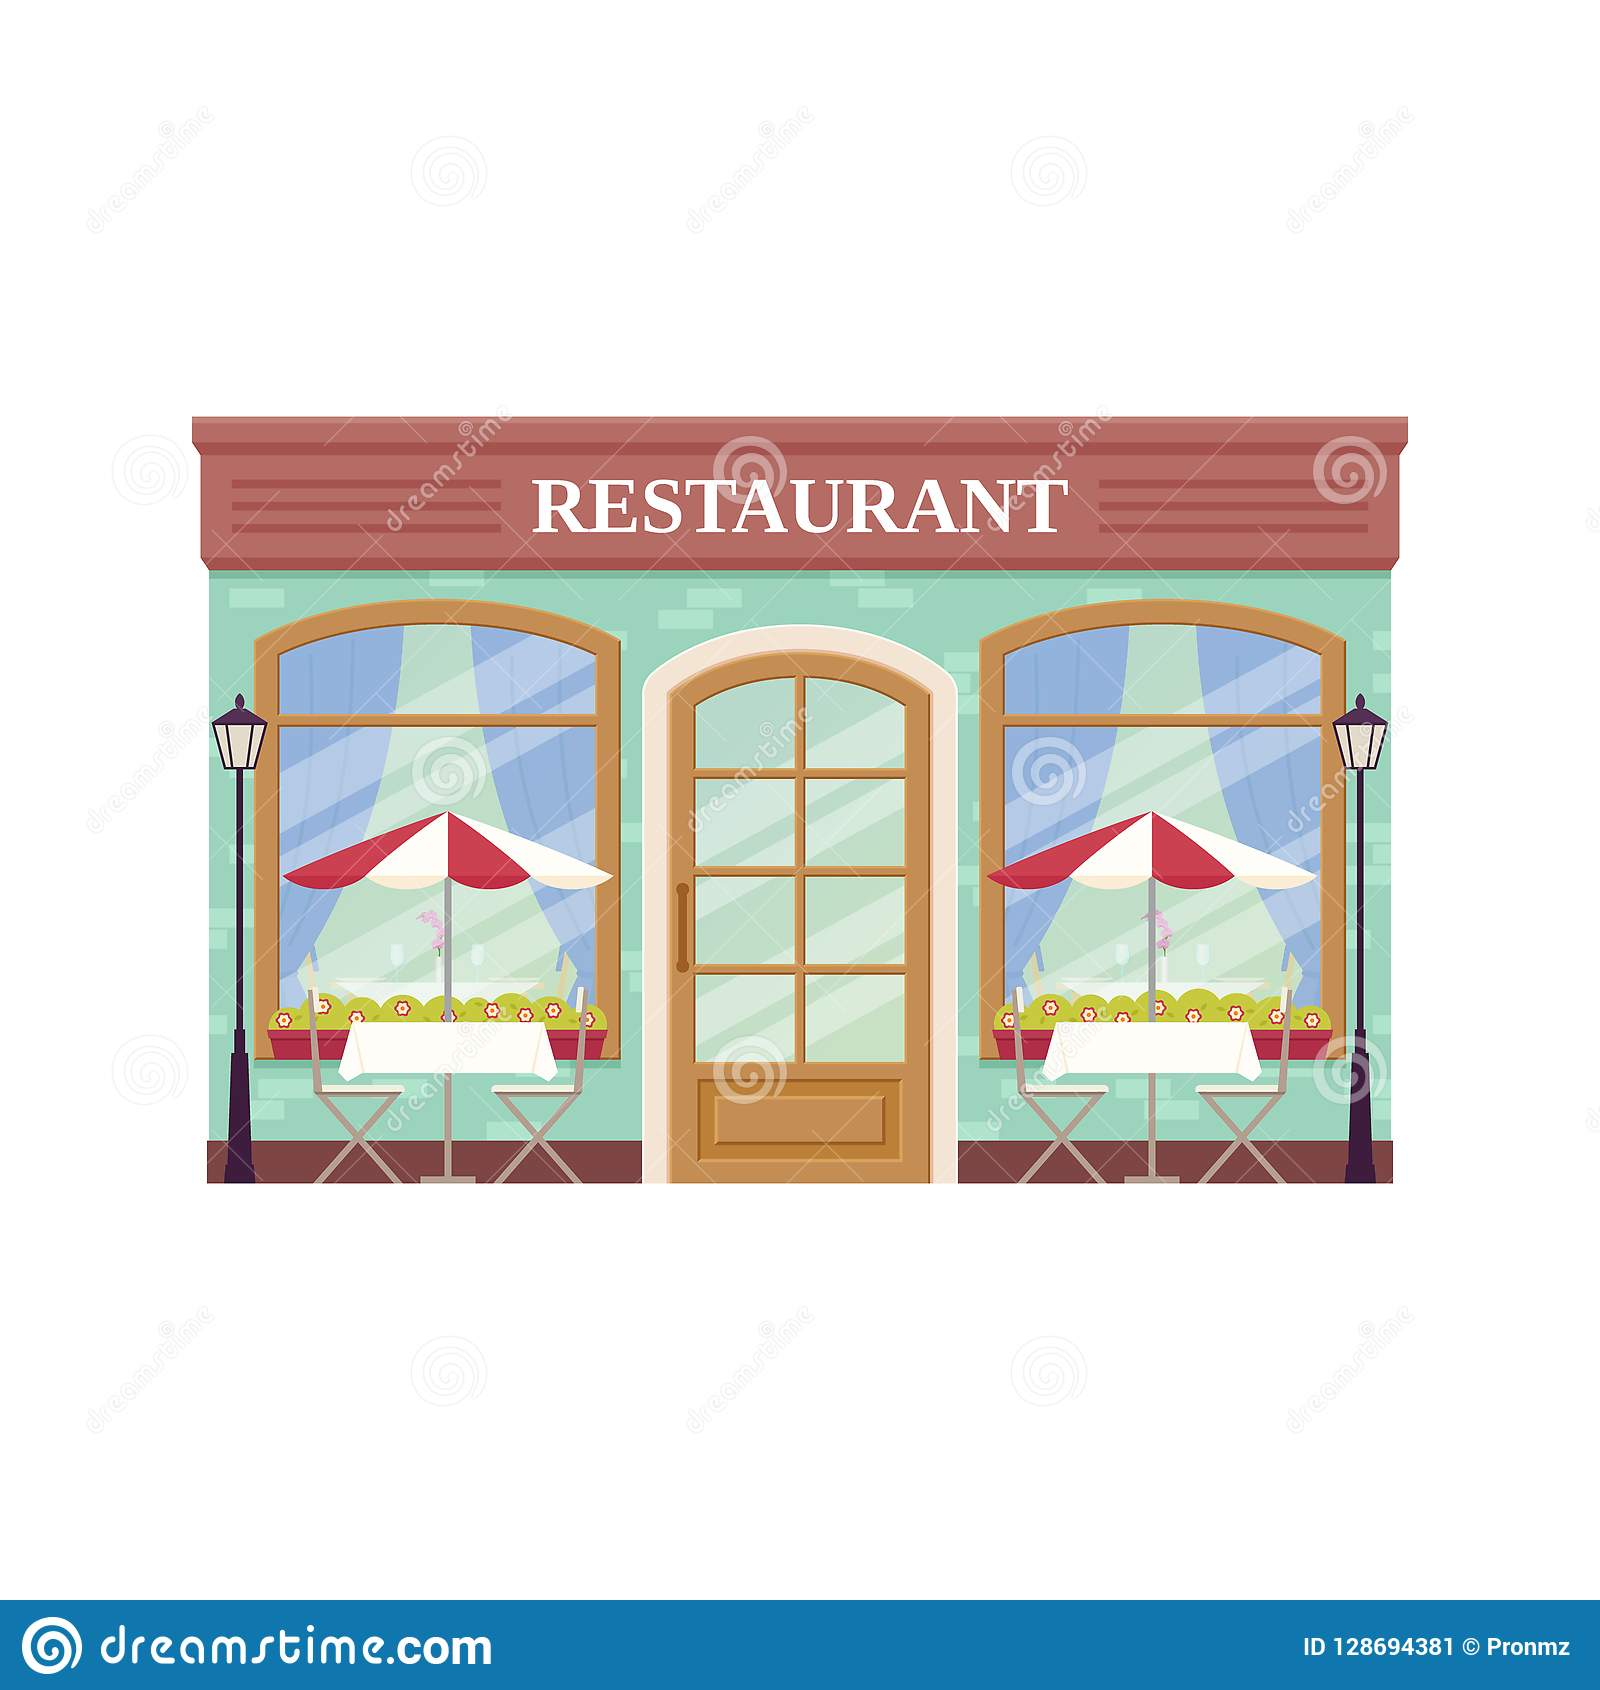 Cafe Shop Storefront Vector Illustration Coffee House Facade Stock Vector Illustration Of Graphic Brick 128694381